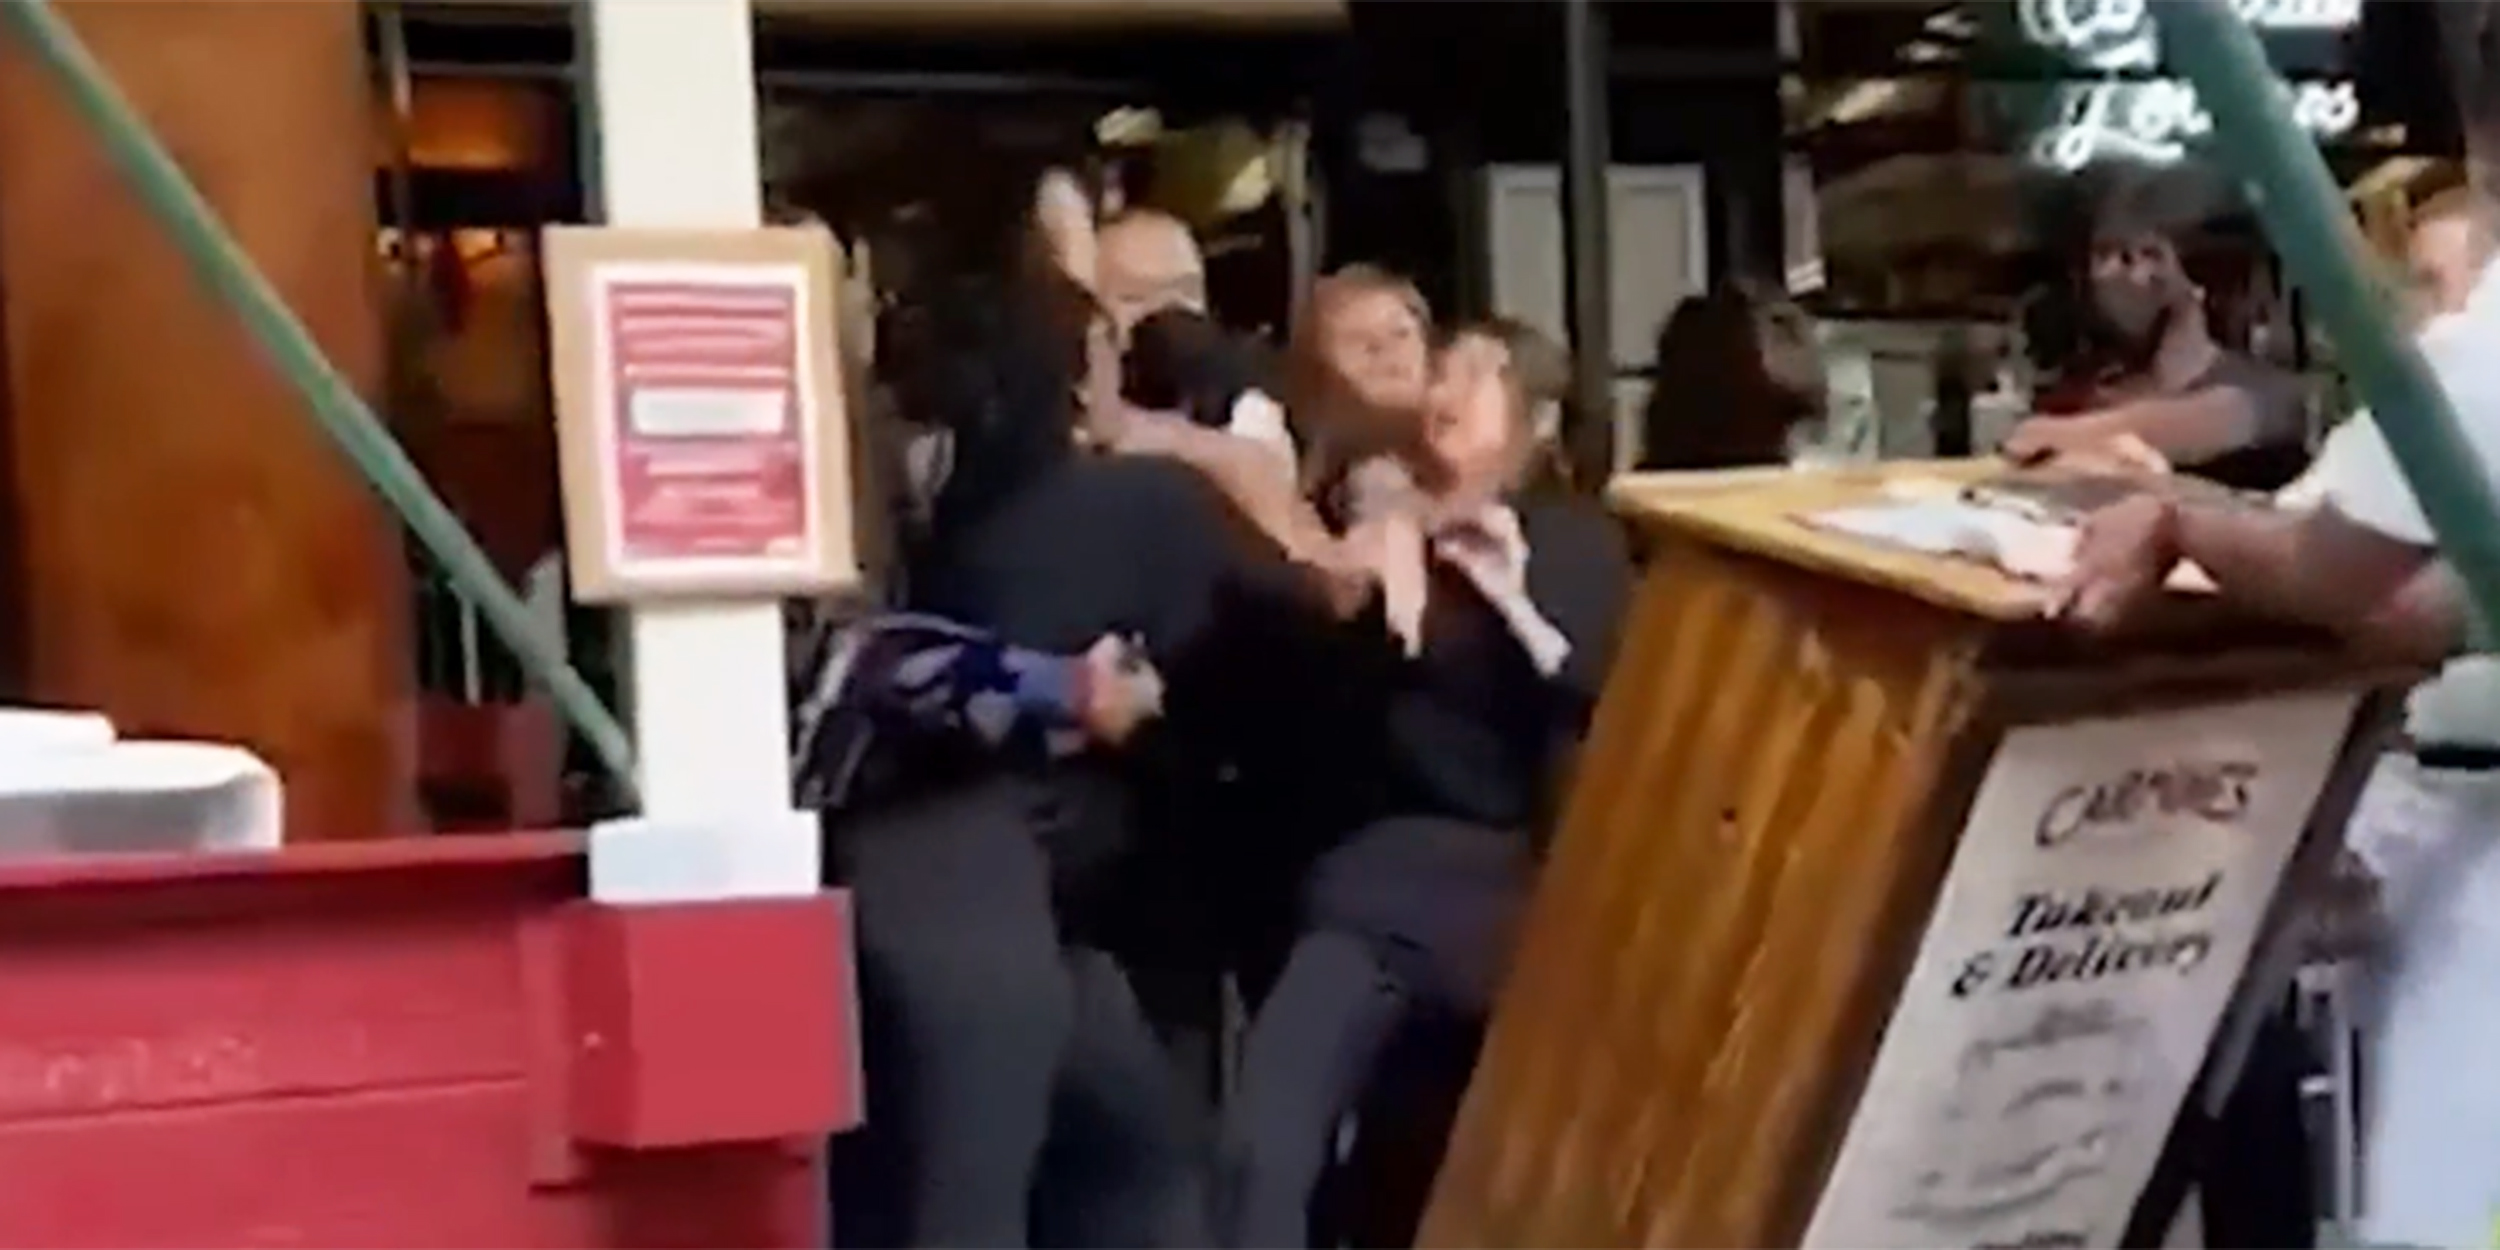 NYC restaurant hostess attacked after asking diners for proof of vaccination